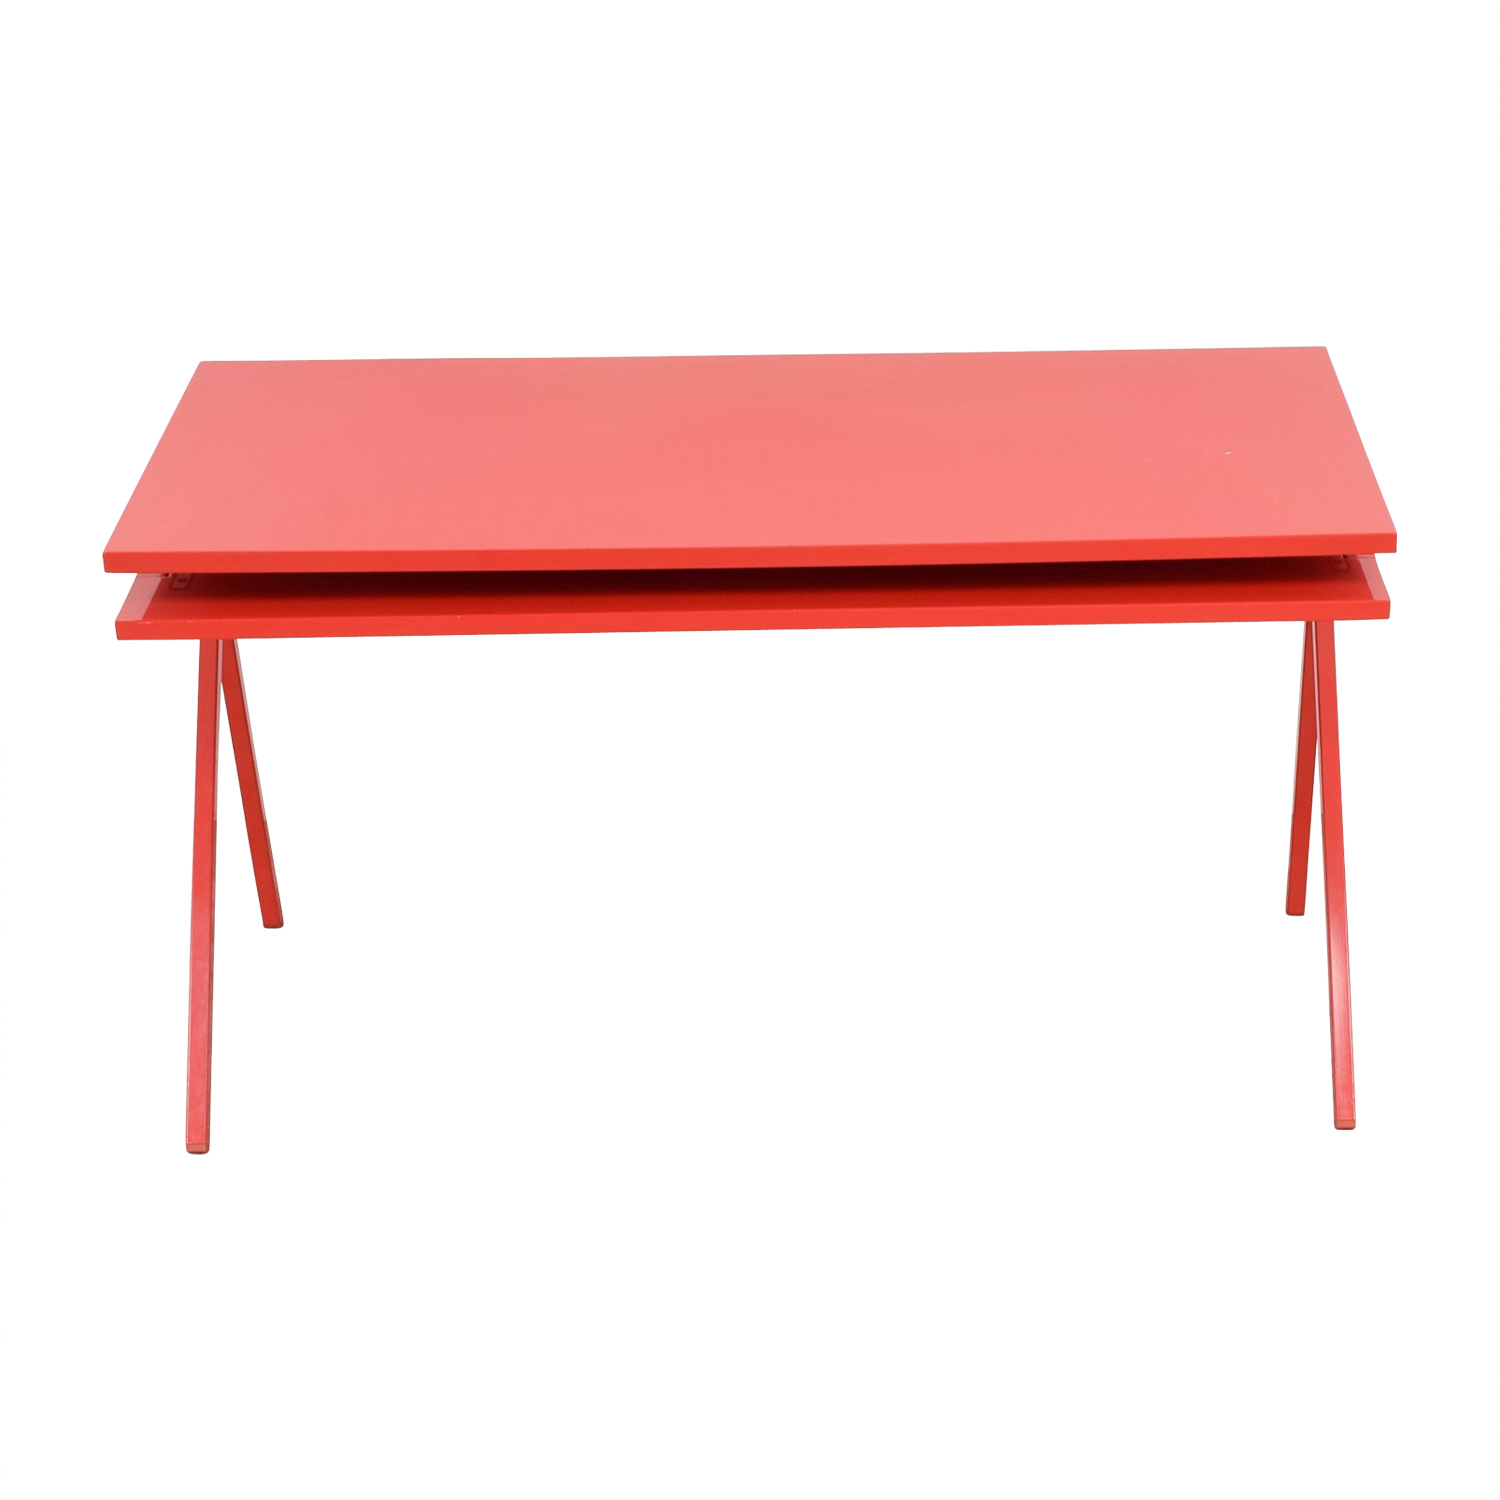 Blu Dot 51 Red Desk / Tables